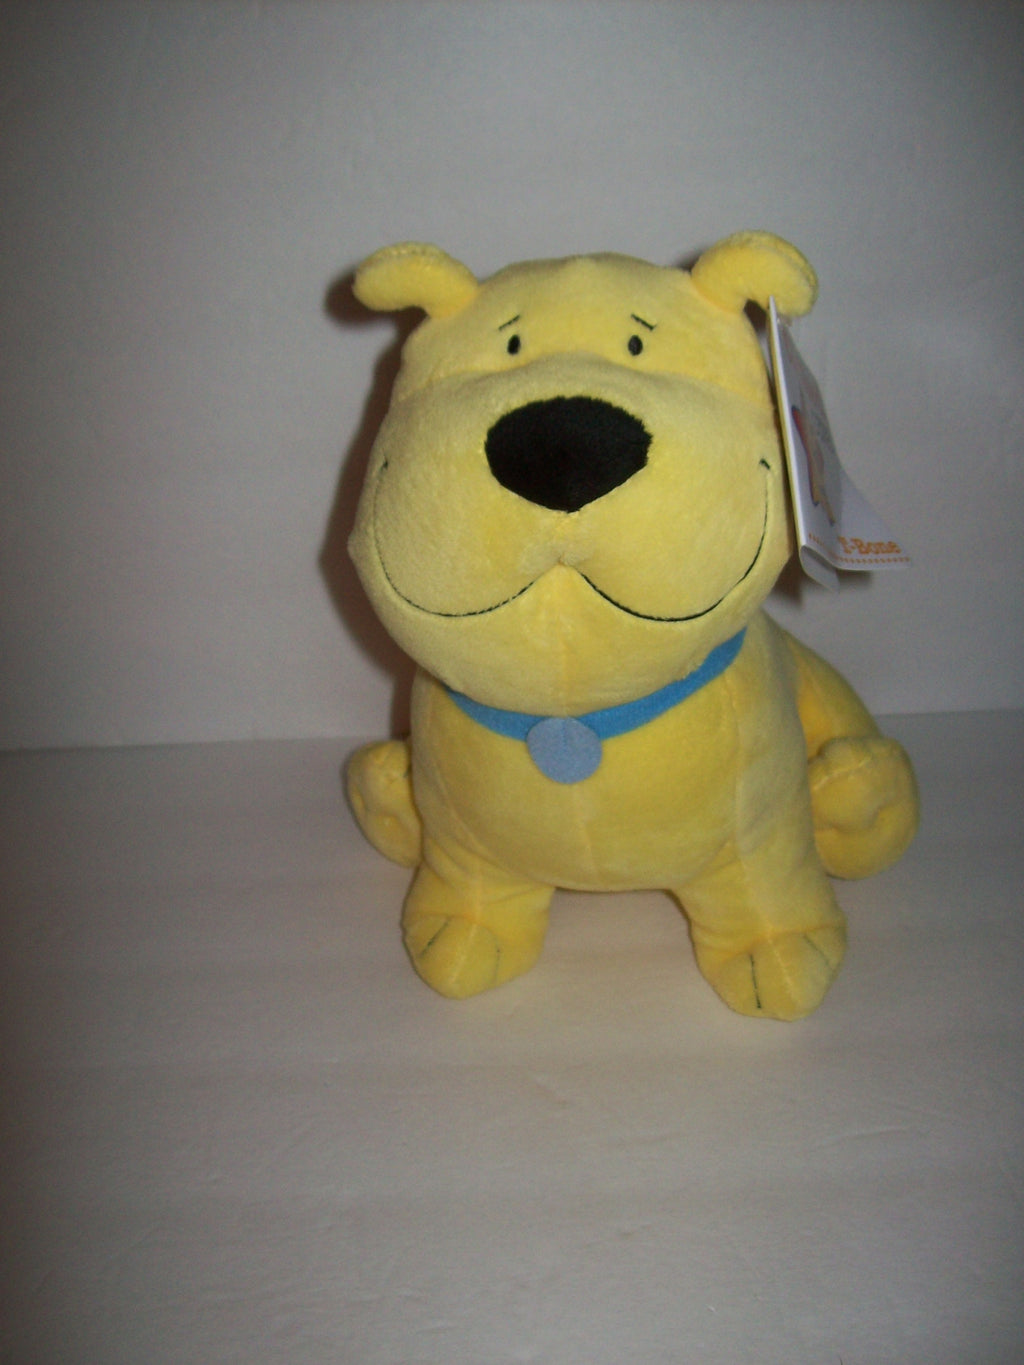 T-Bone Clifford Plush Kohl's Cares - We Got Character